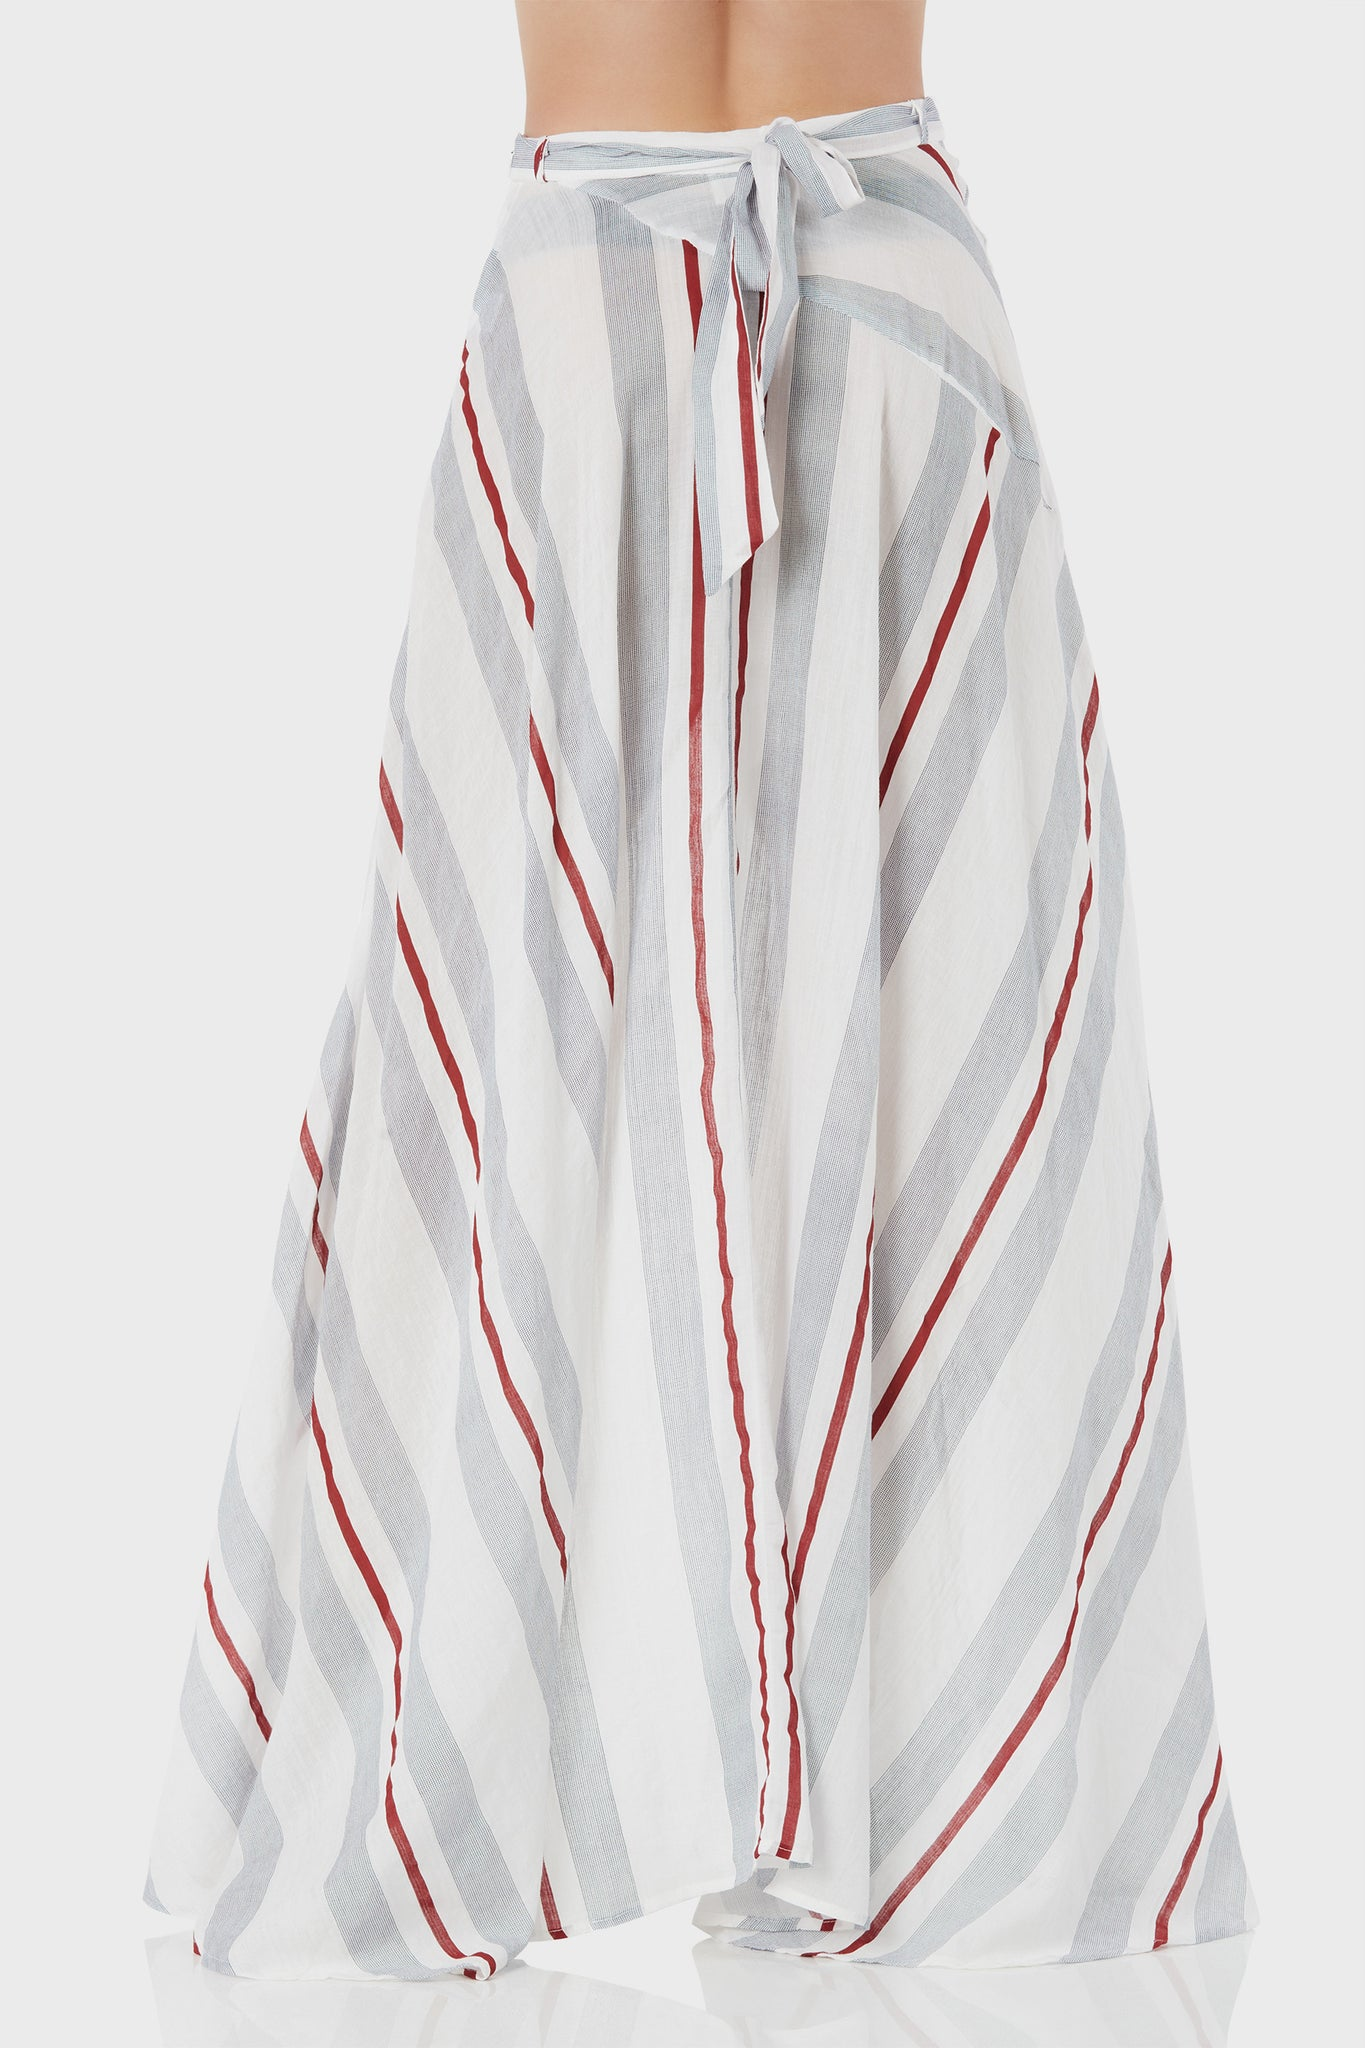 Flowy high rise skirt with wrap front design. Bold stripe print throughout with hi-low hem finish.